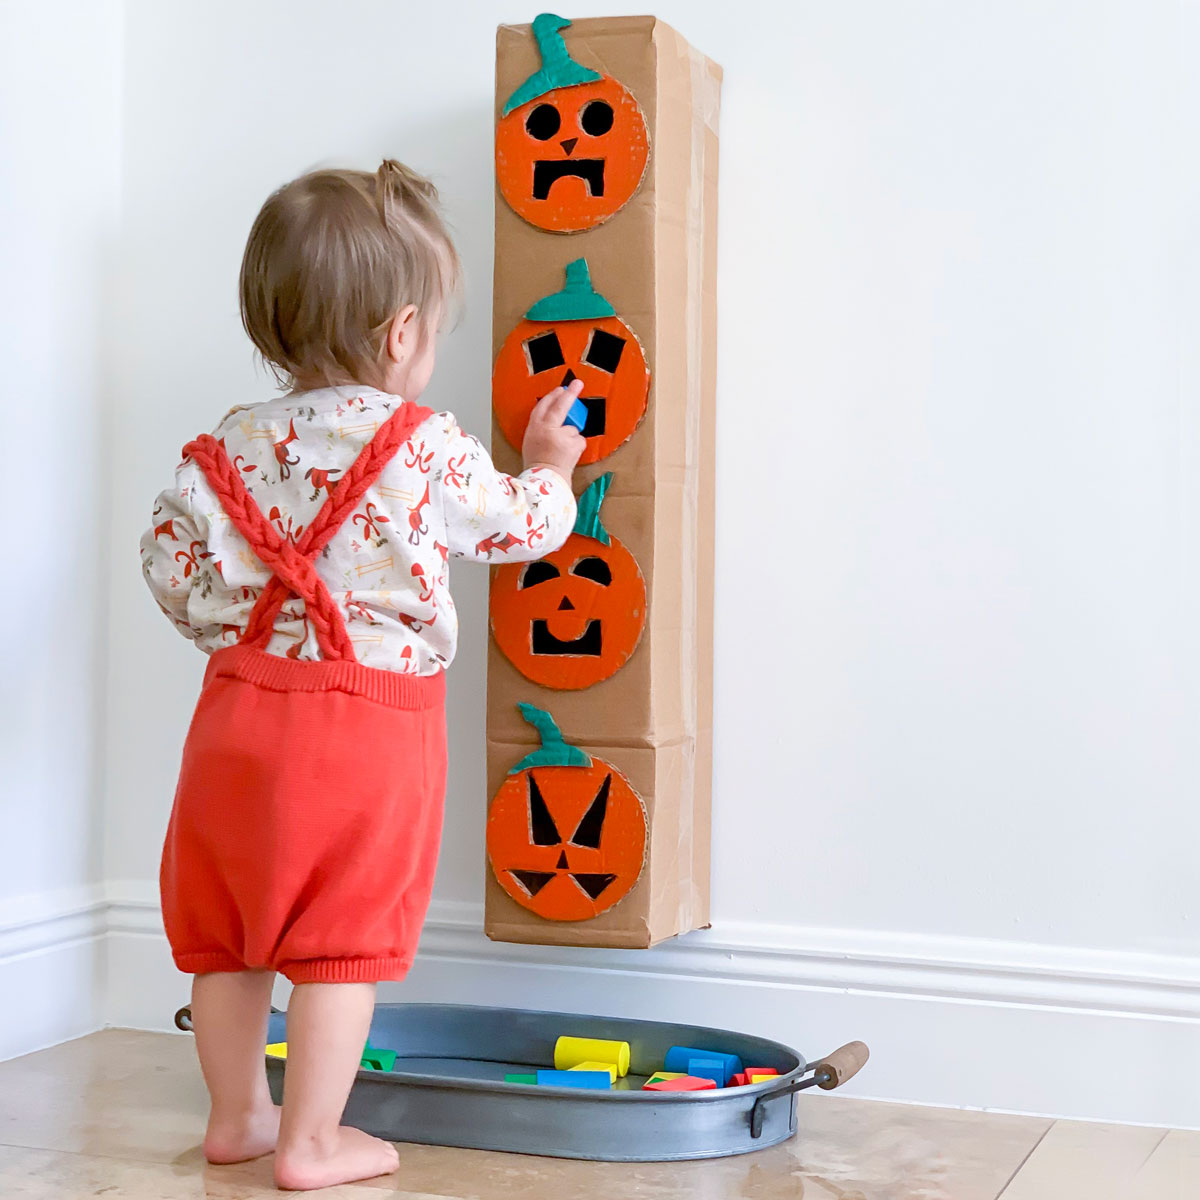 Halloween Activity for Toddlers – Make a Shape Sorter